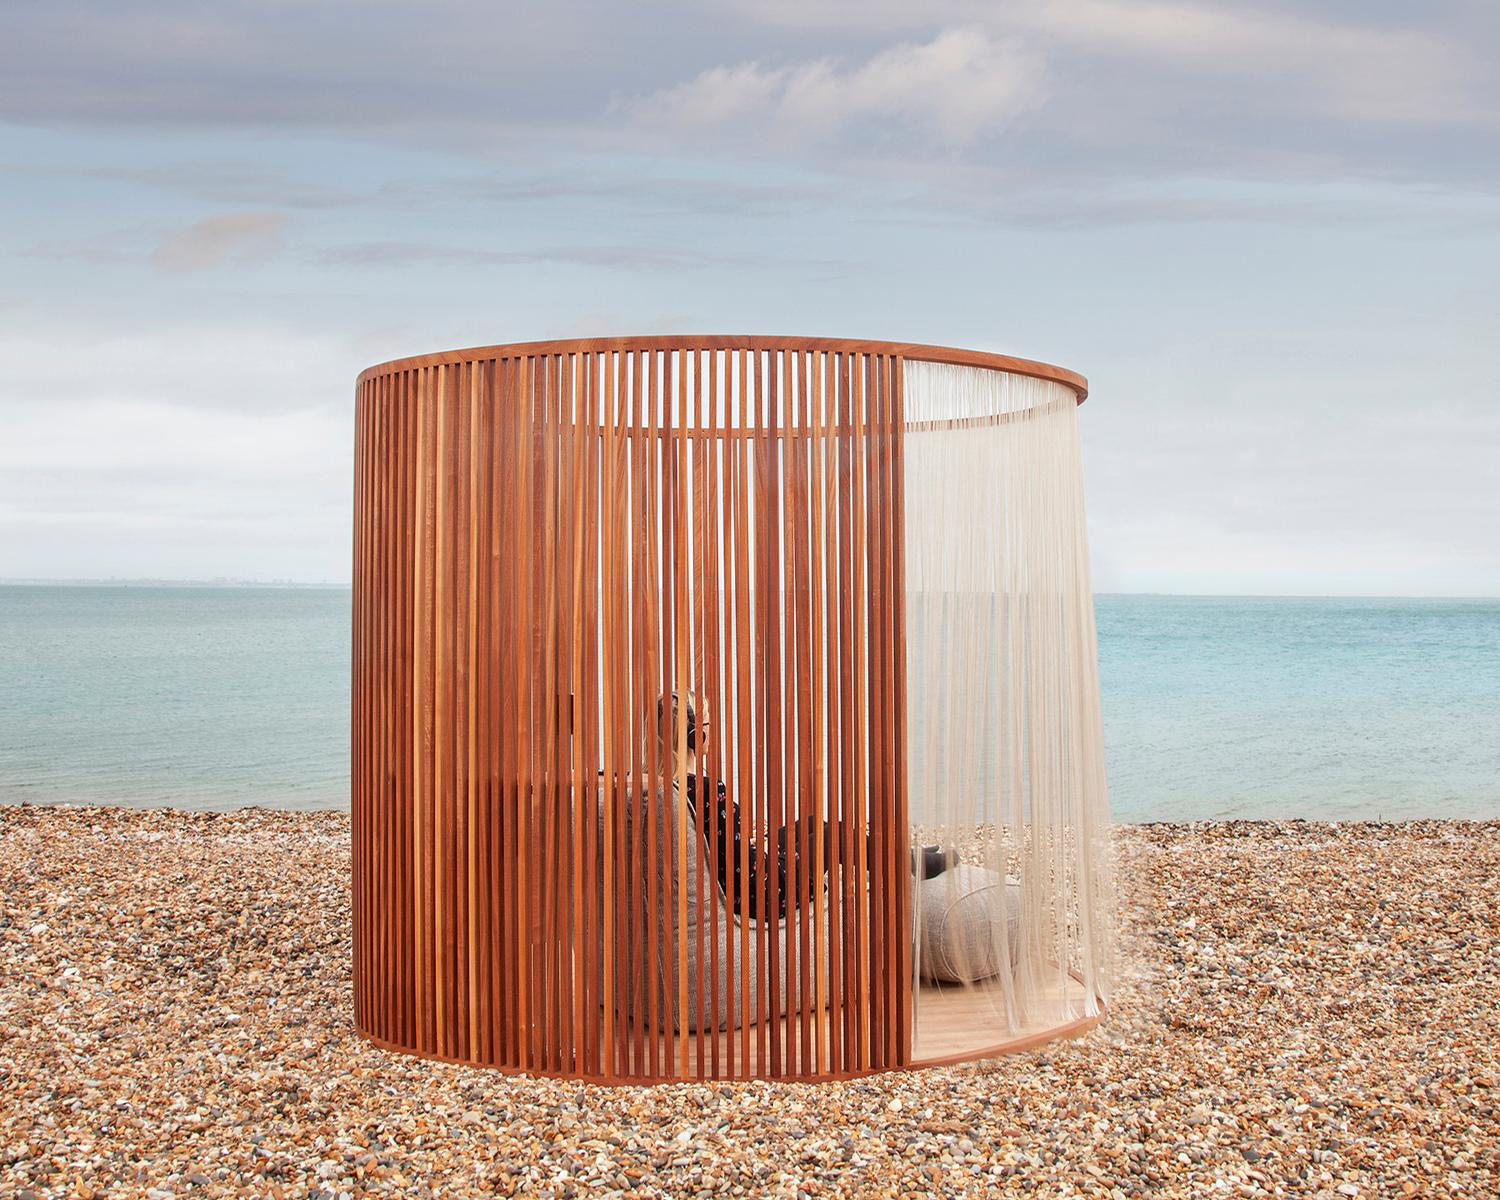 Inhere Studio collaborated with Design & That to create the meditation pods